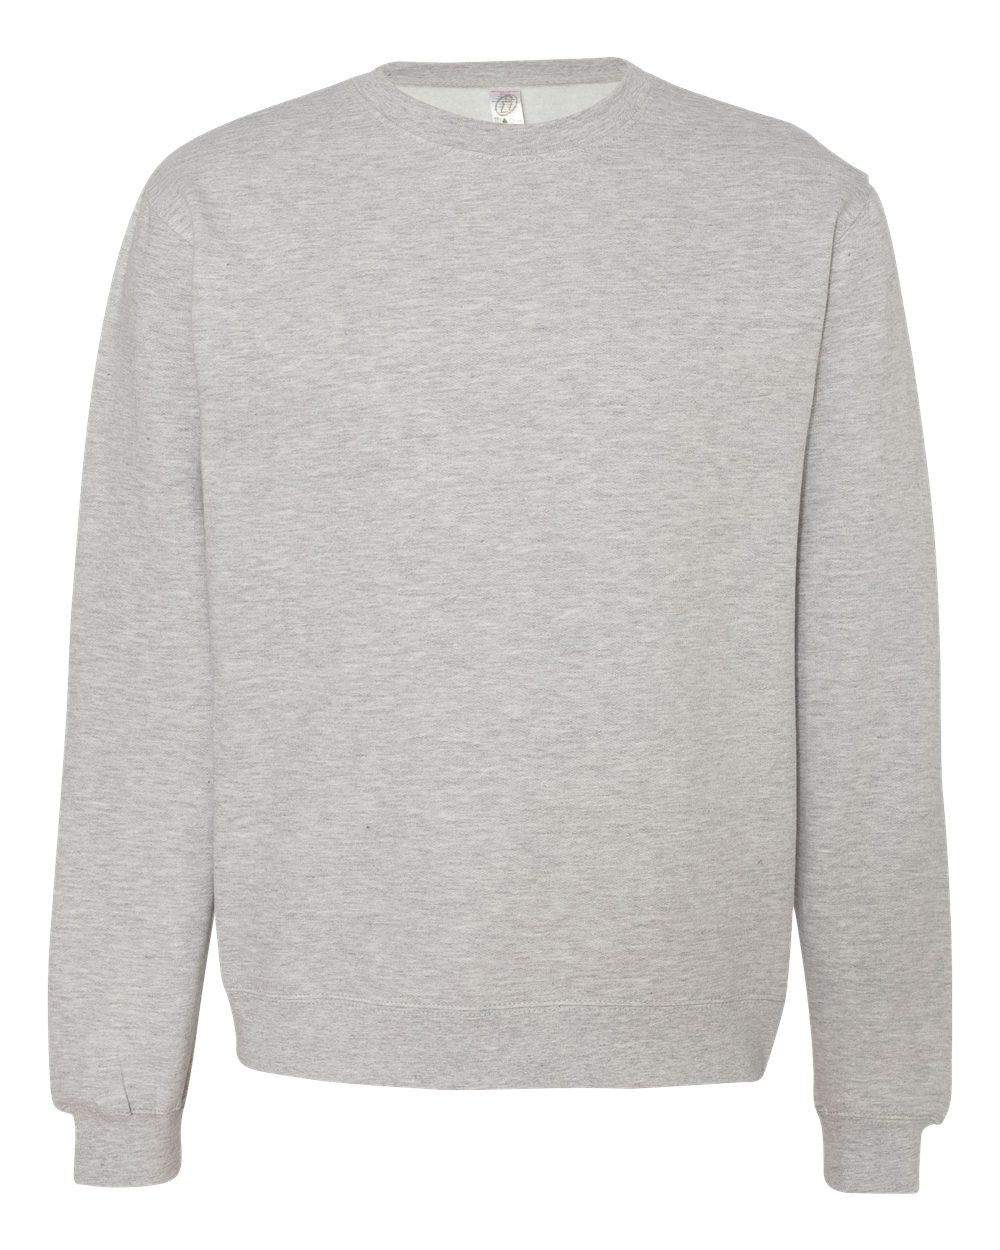 Independent-Trading-Co-Midweight-Crewneck-Sweatshirt-SS3000-up-to-3XL miniature 24